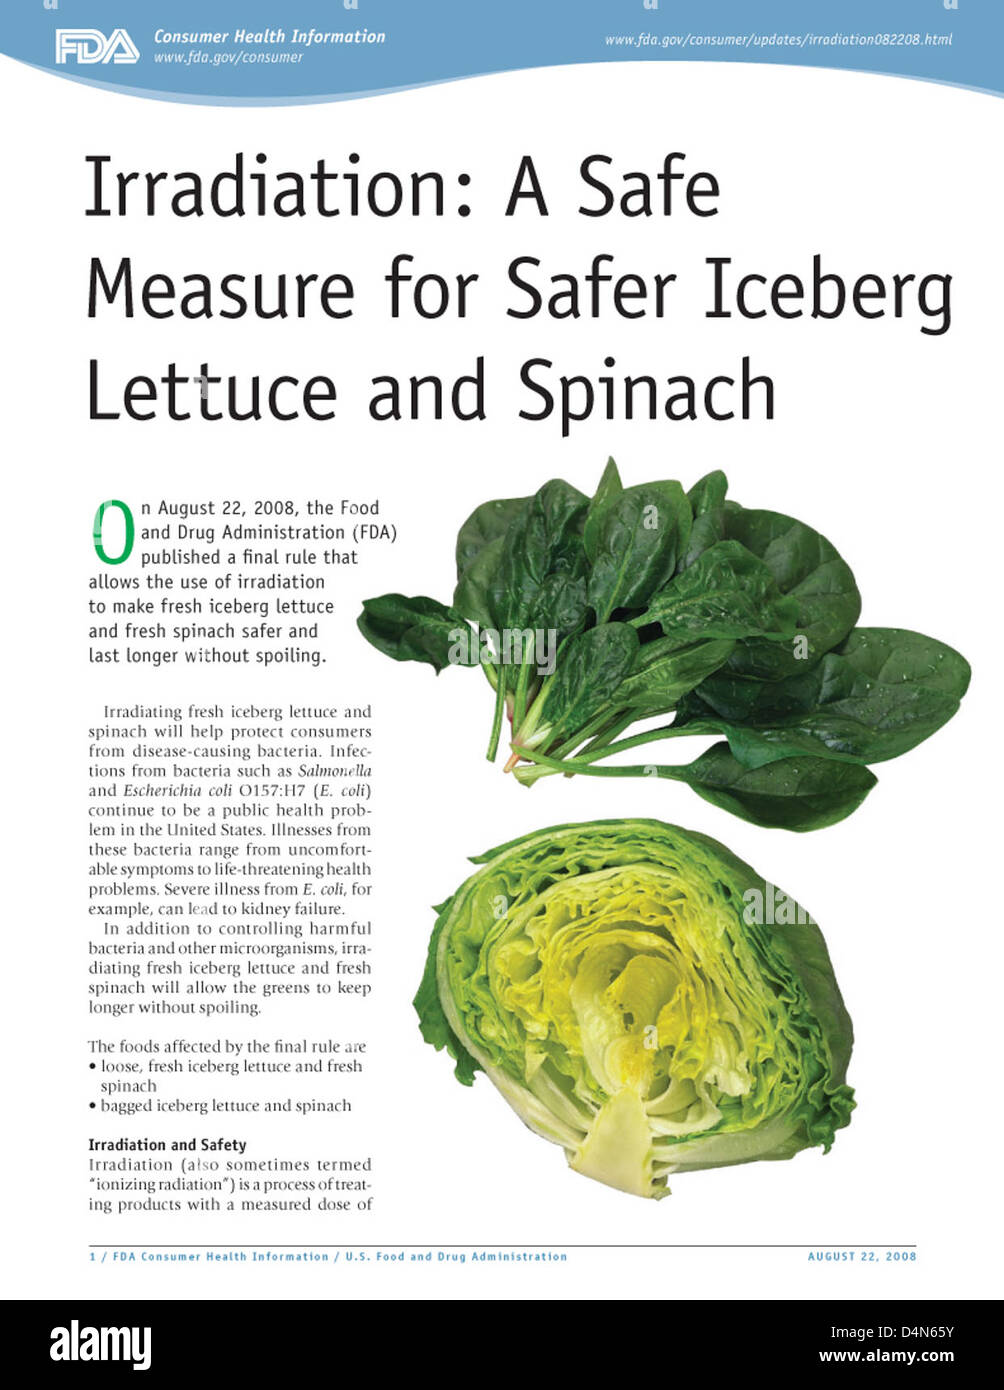 Irradiation: A Safe Measure for Safer Iceberg Lettuce and Spinach - Stock Image